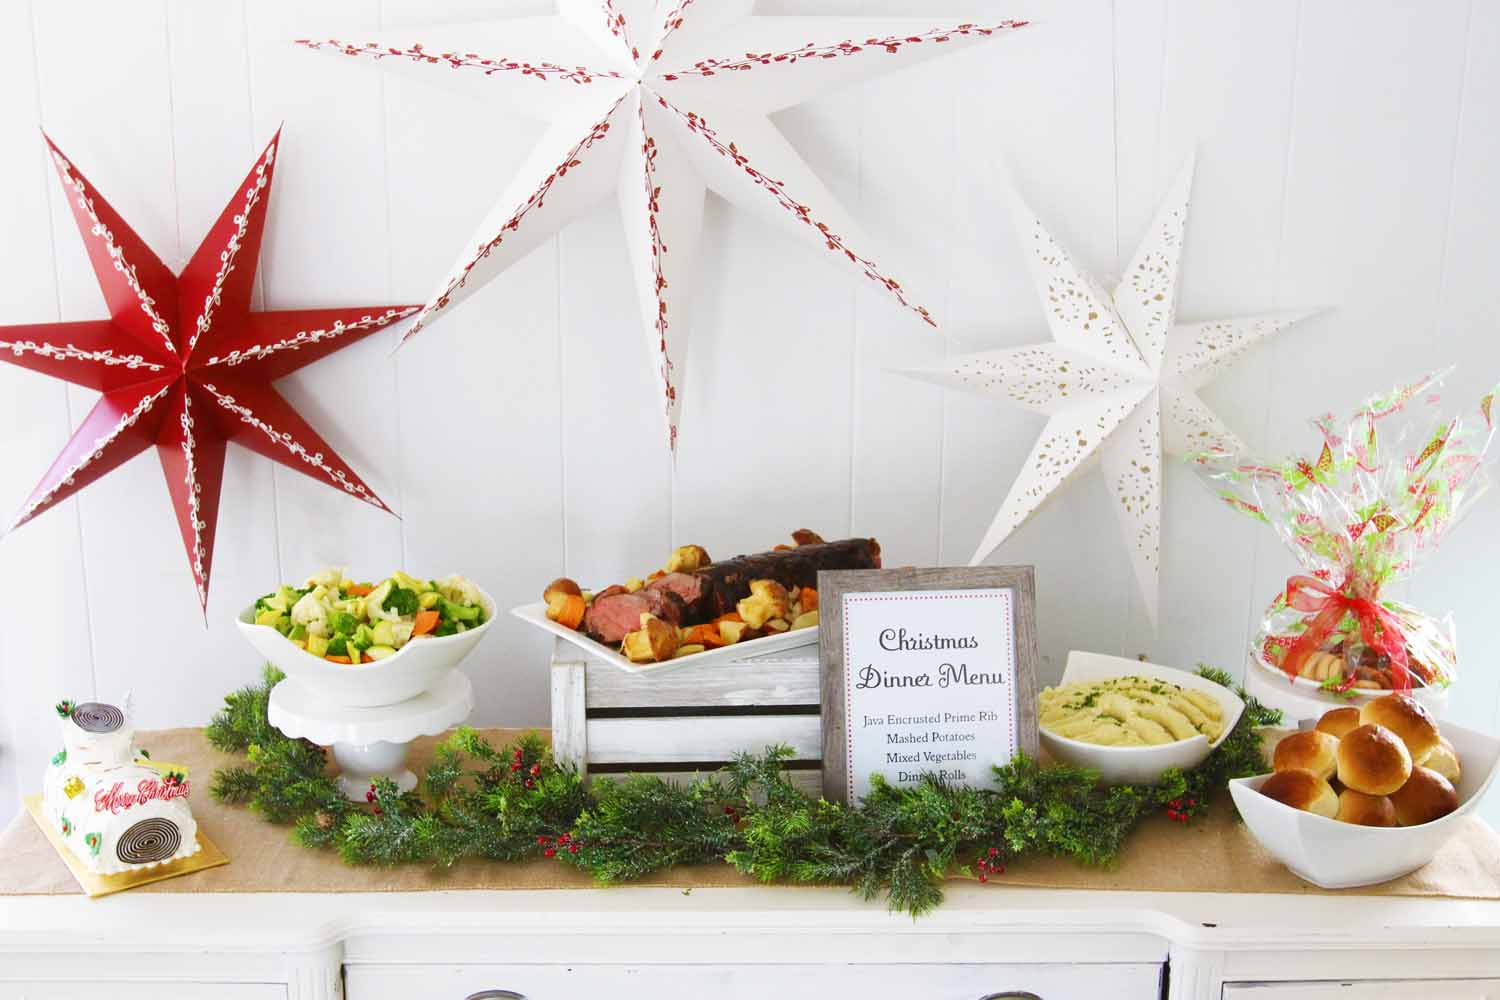 Complete Holiday Dinners provided by Pierrot Catering in Sparta Sussex County NJ